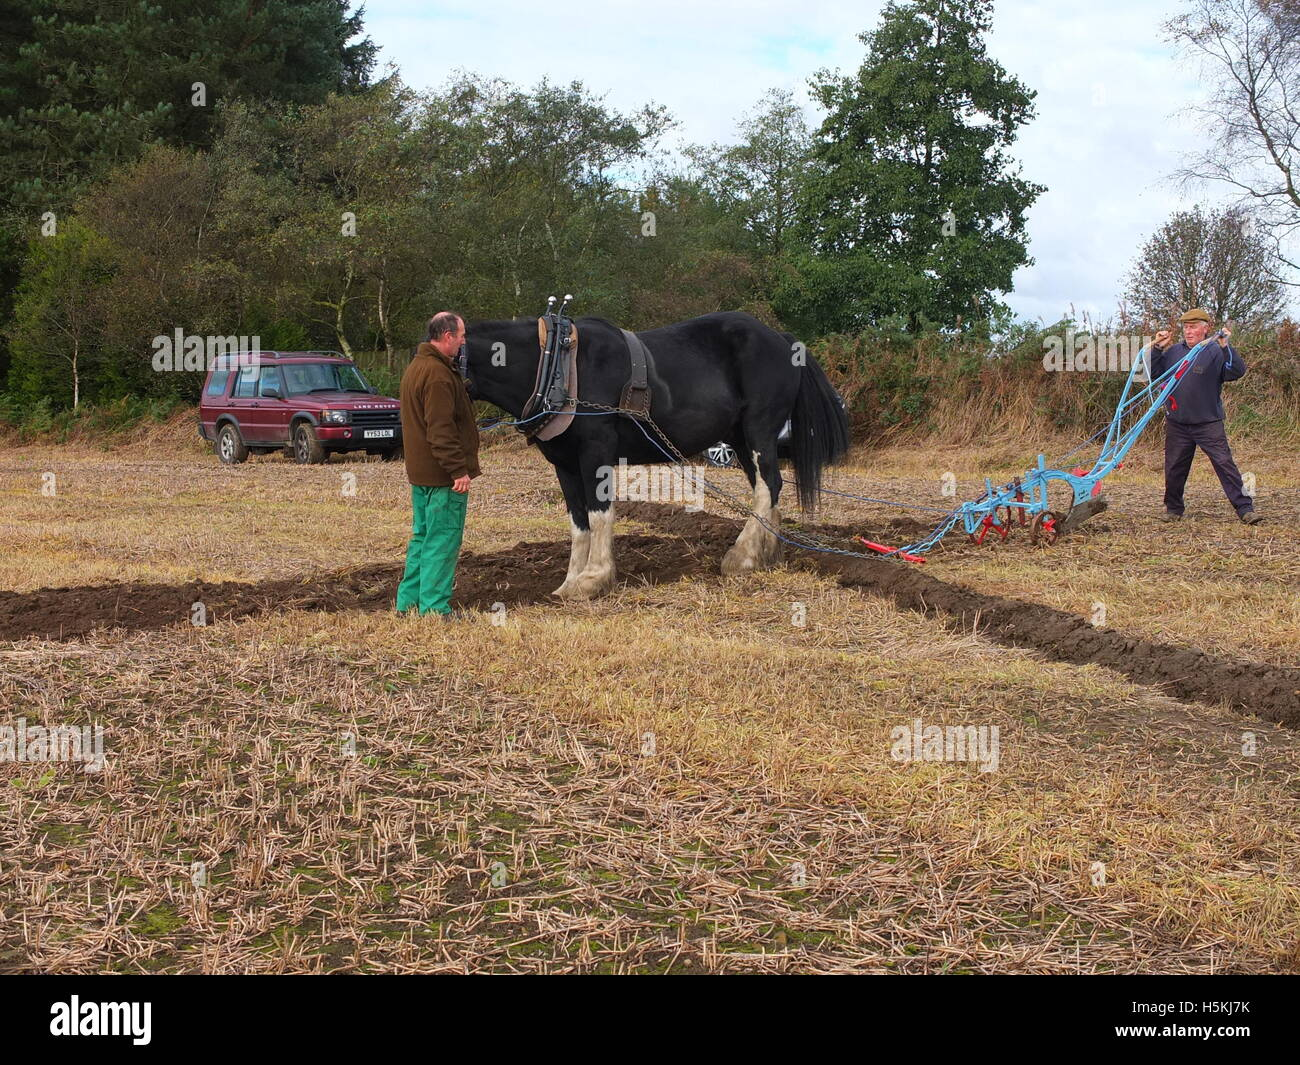 Ploughing the old-fashioned way with horse drawn plough at Ashover Ploughing Match, Highoredish Farm, Ashover. Stock Photo